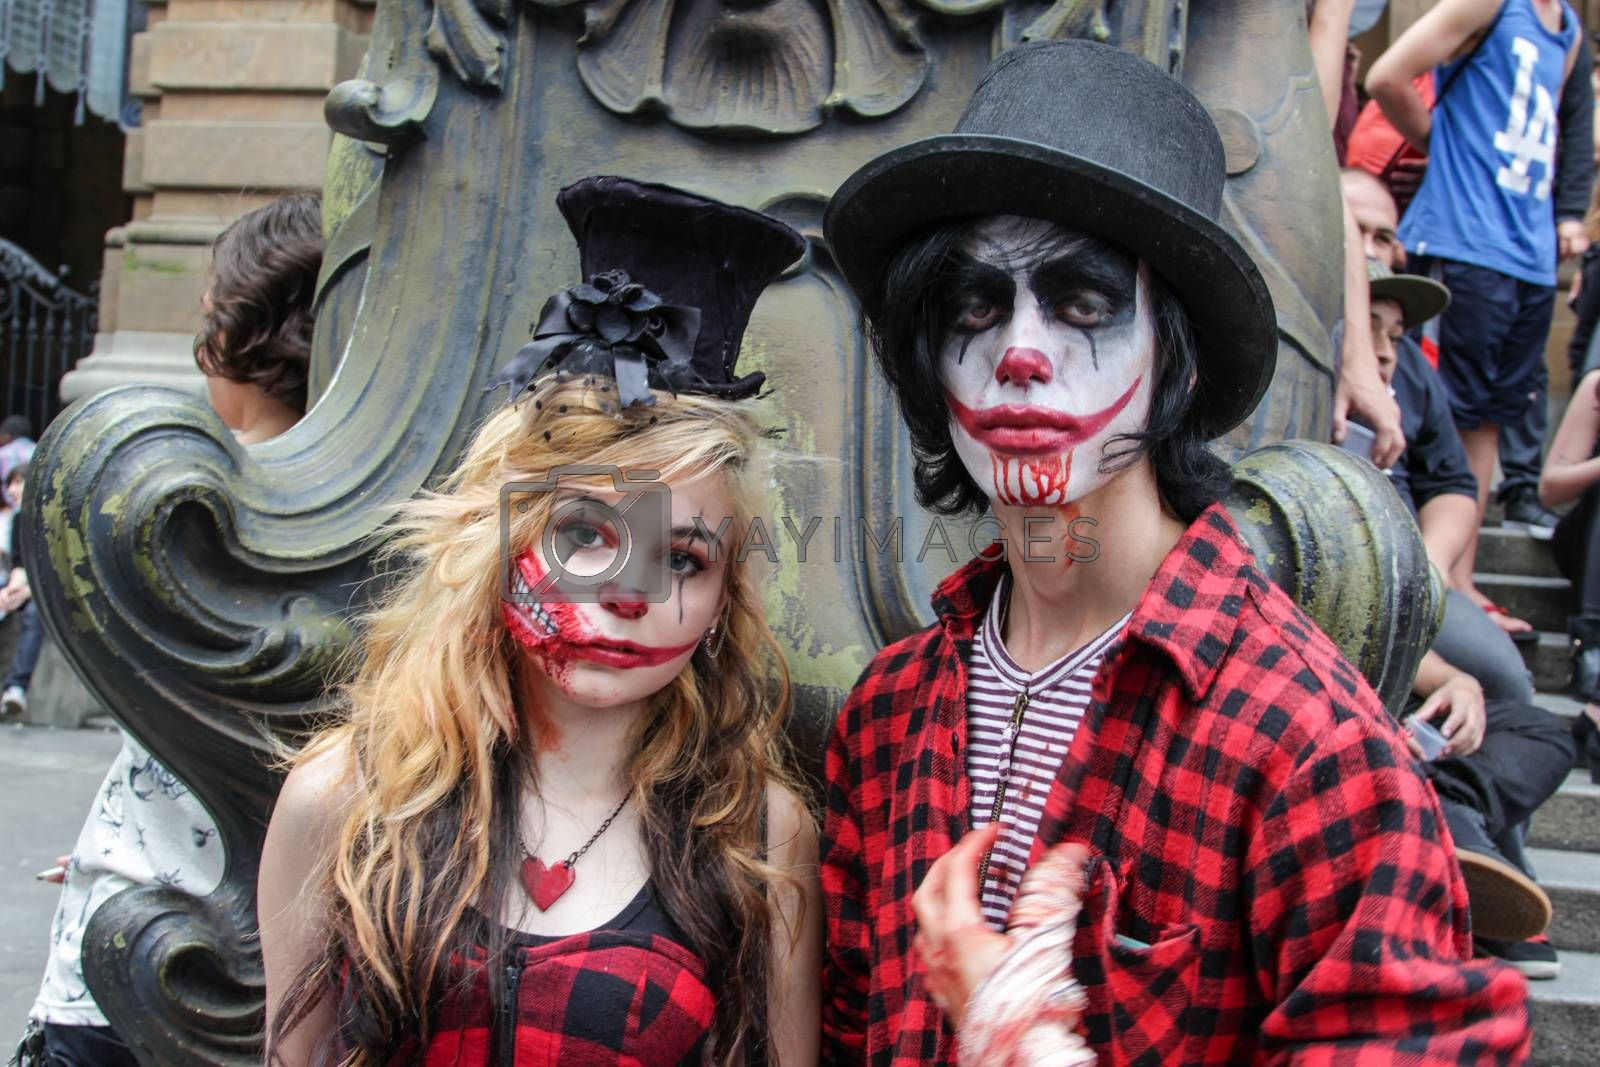 Sao Paulo, Brazil November 11 2015: An unidentified couple with costumes in the annual event Zombie Walk in Sao Paulo Brazil.